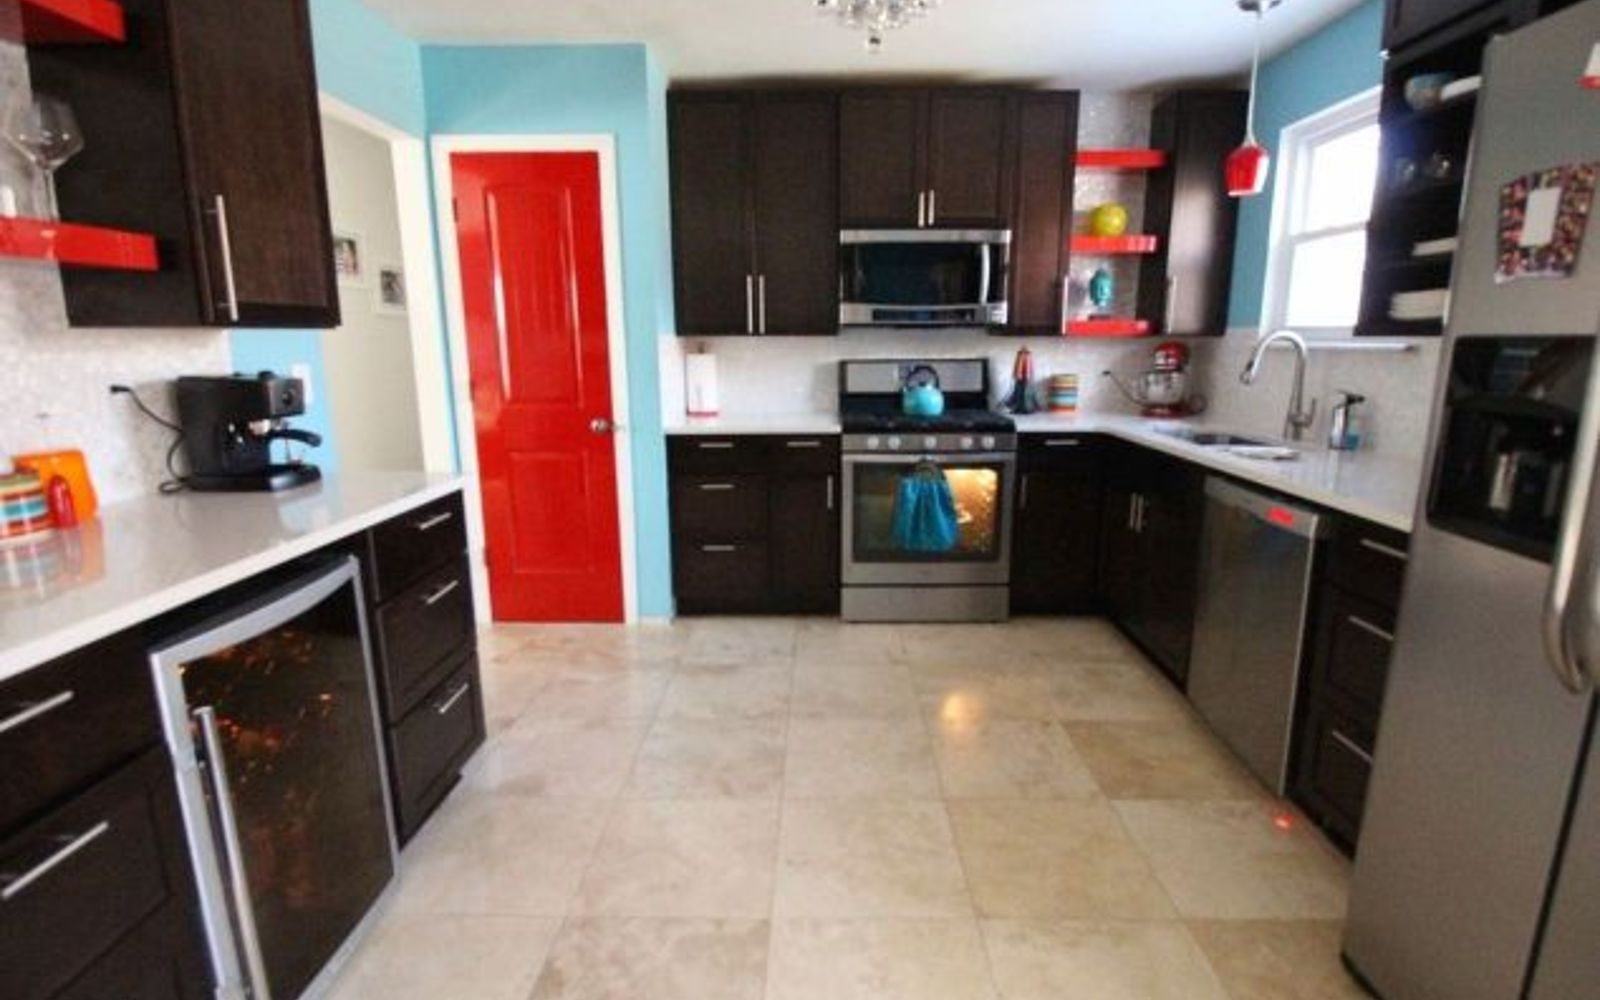 s 13 kitchen paint colors people are pinning like crazy, kitchen design, paint colors, Spice up your kitchen with red